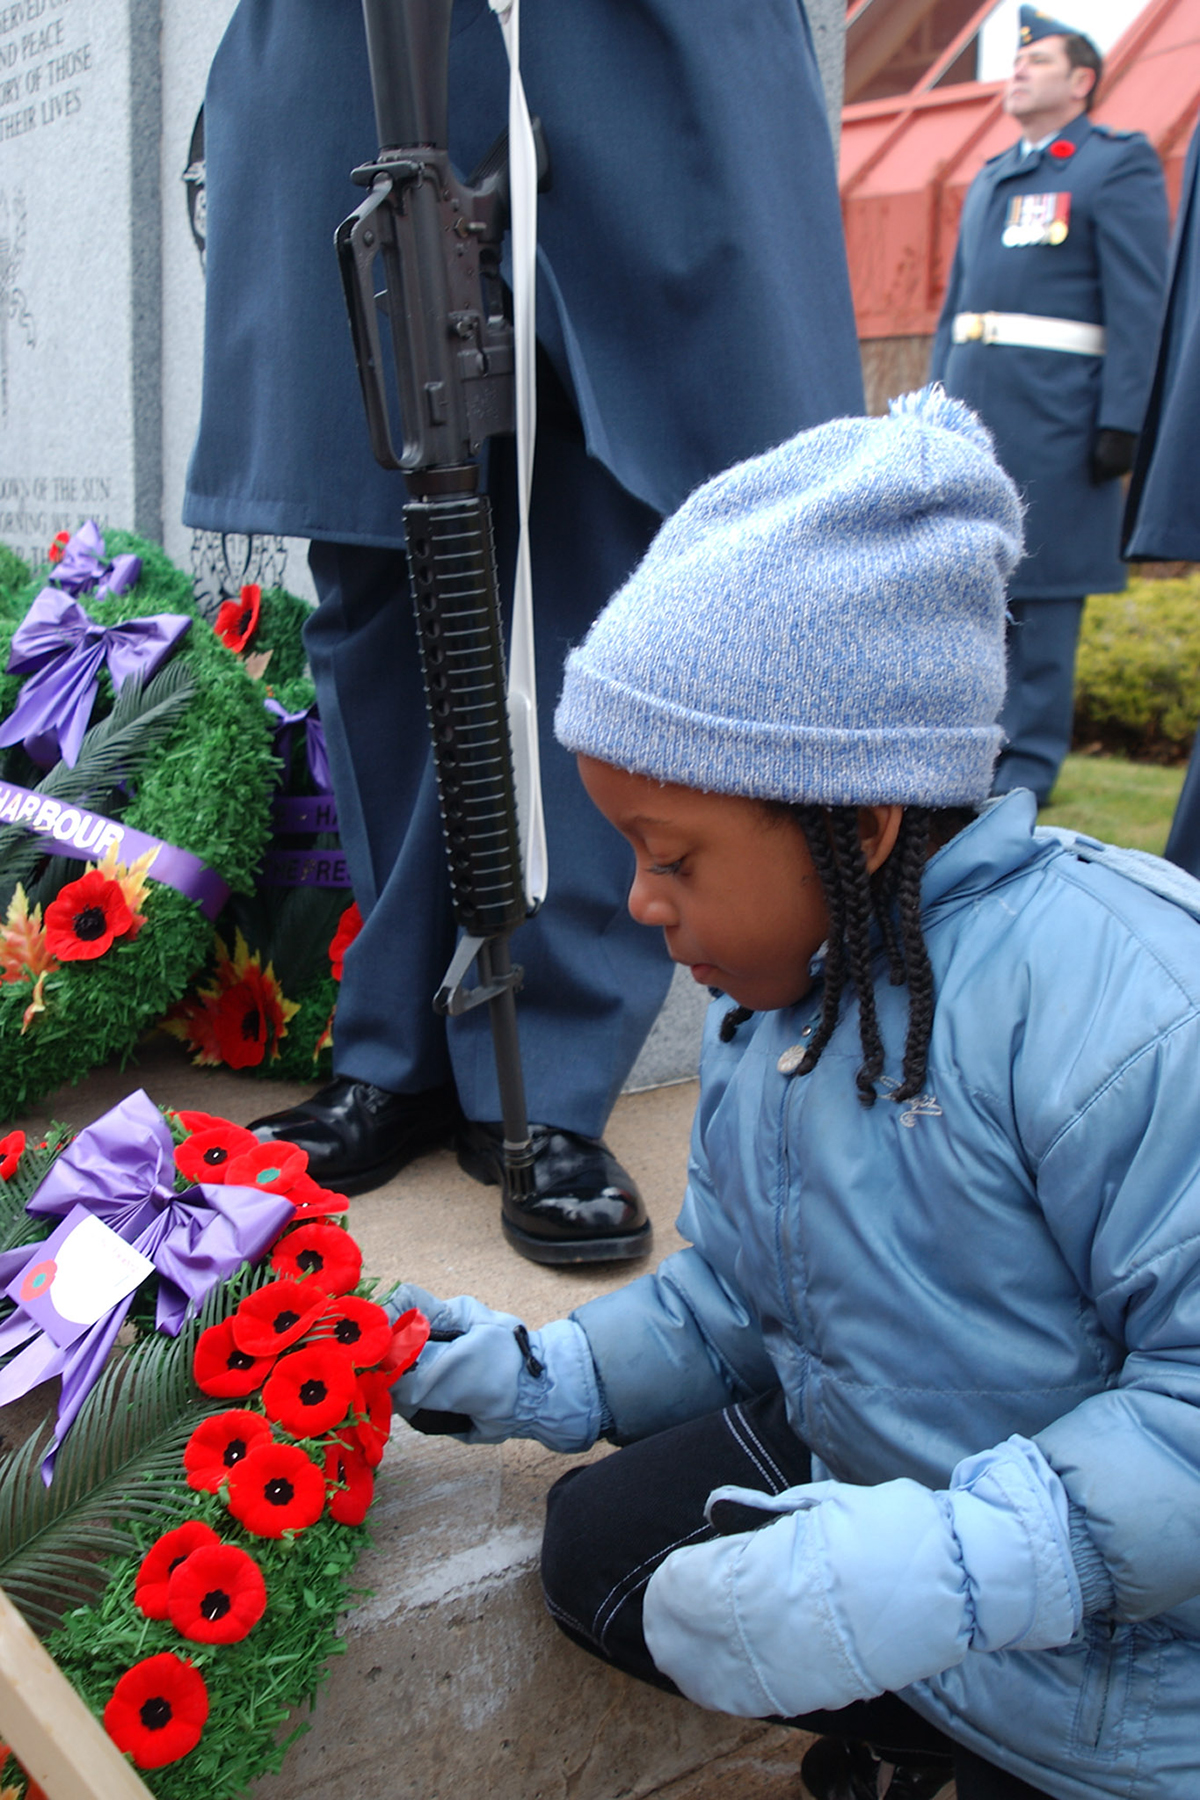 A child places her poppy on a wreath following the November 11, 2004, Remembrance Day ceremony hosted by Centennial Branch #160 of the Royal Canadian Legion in Cole Harbour, Nova Scotia. PHOTO: Corporal Claude Flibotte, SW2004-0483-05a